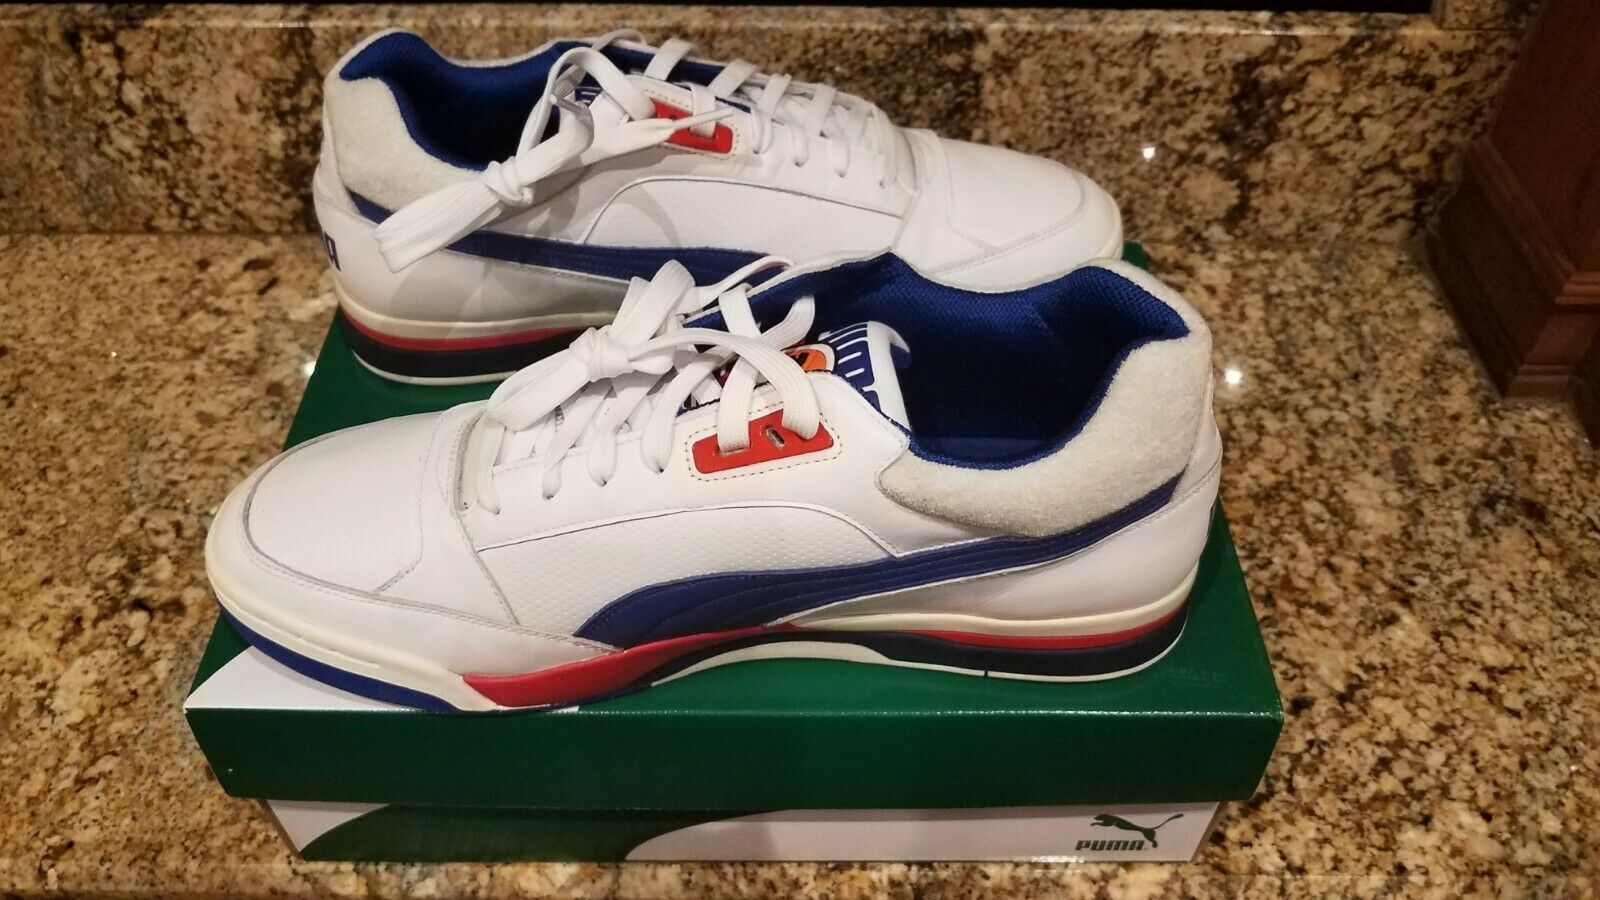 PUMA PALACE GUARD OG (US SIZE 14) 2019 BRAND NEW IN BOX